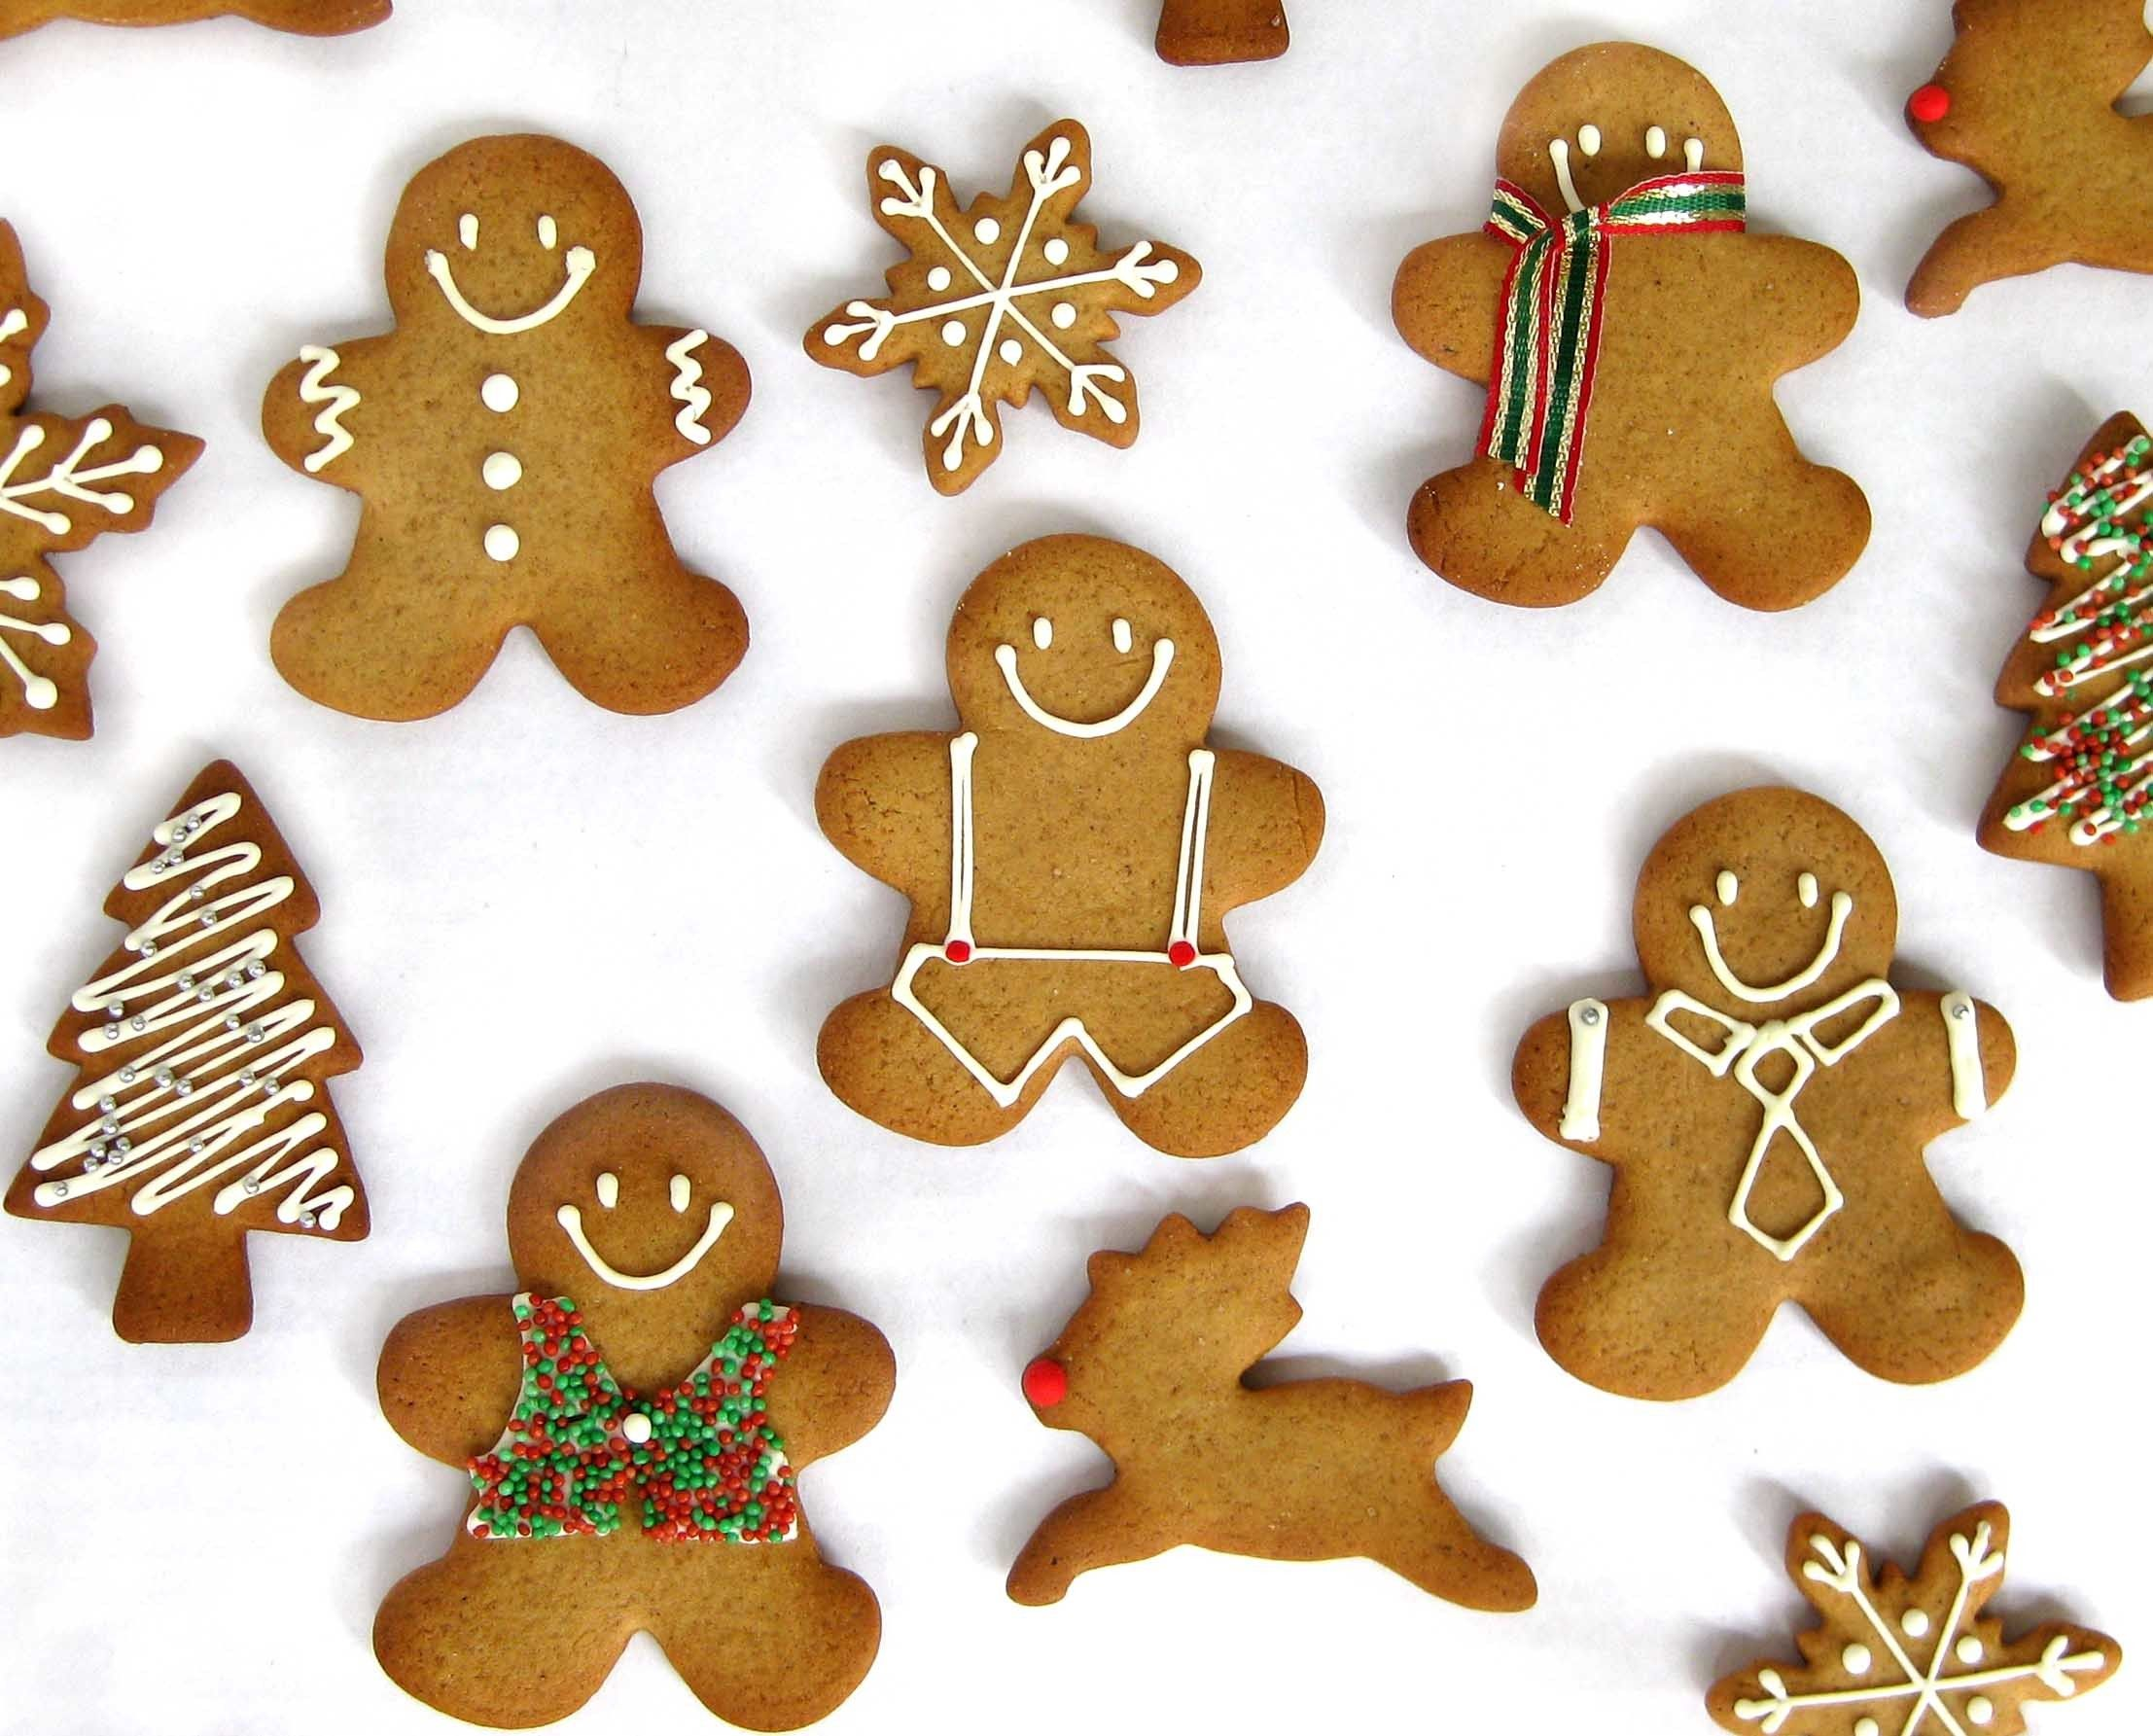 Gingerbread Man Reindeer Snowflakes Cookies For Christmas Food And Cooking Delicious